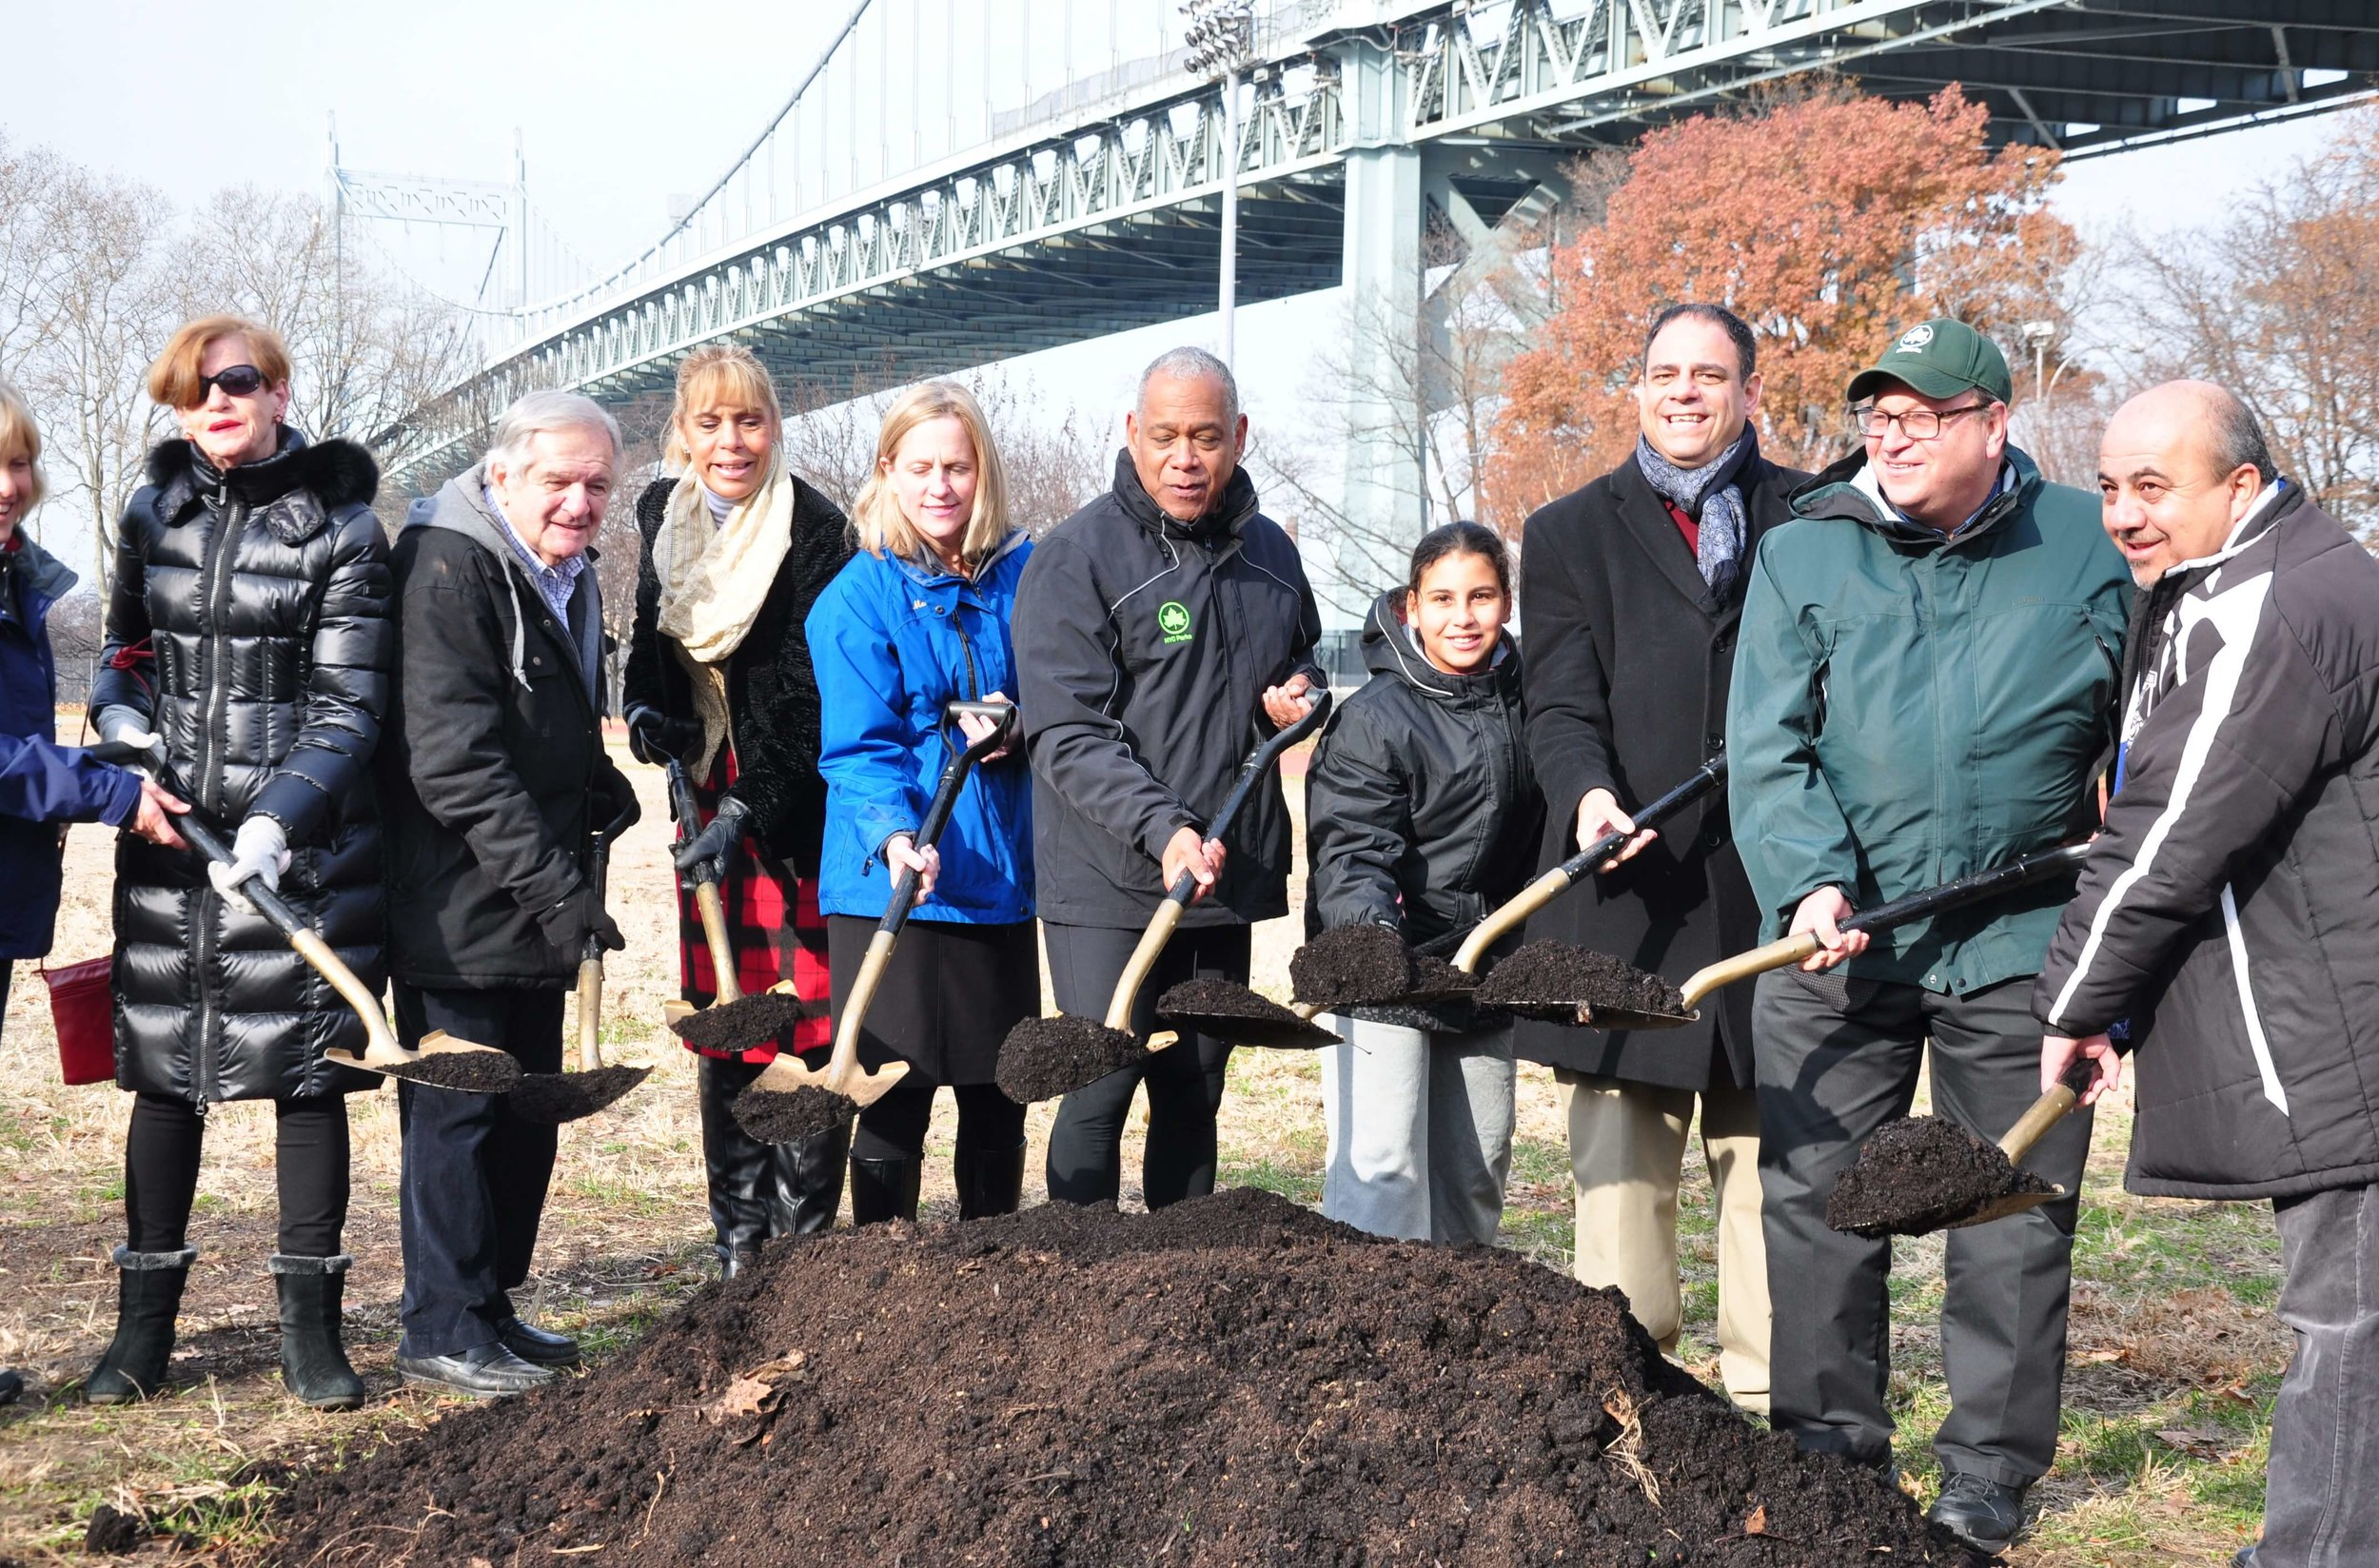 Local leaders break ground at Astoria Park in December 2018. The park will feature a sustainable rain garden to manage runoff thanks to the advocacy of 12-year-old Angela Garvin. Photo courtesy of Costa Constantinides' office.